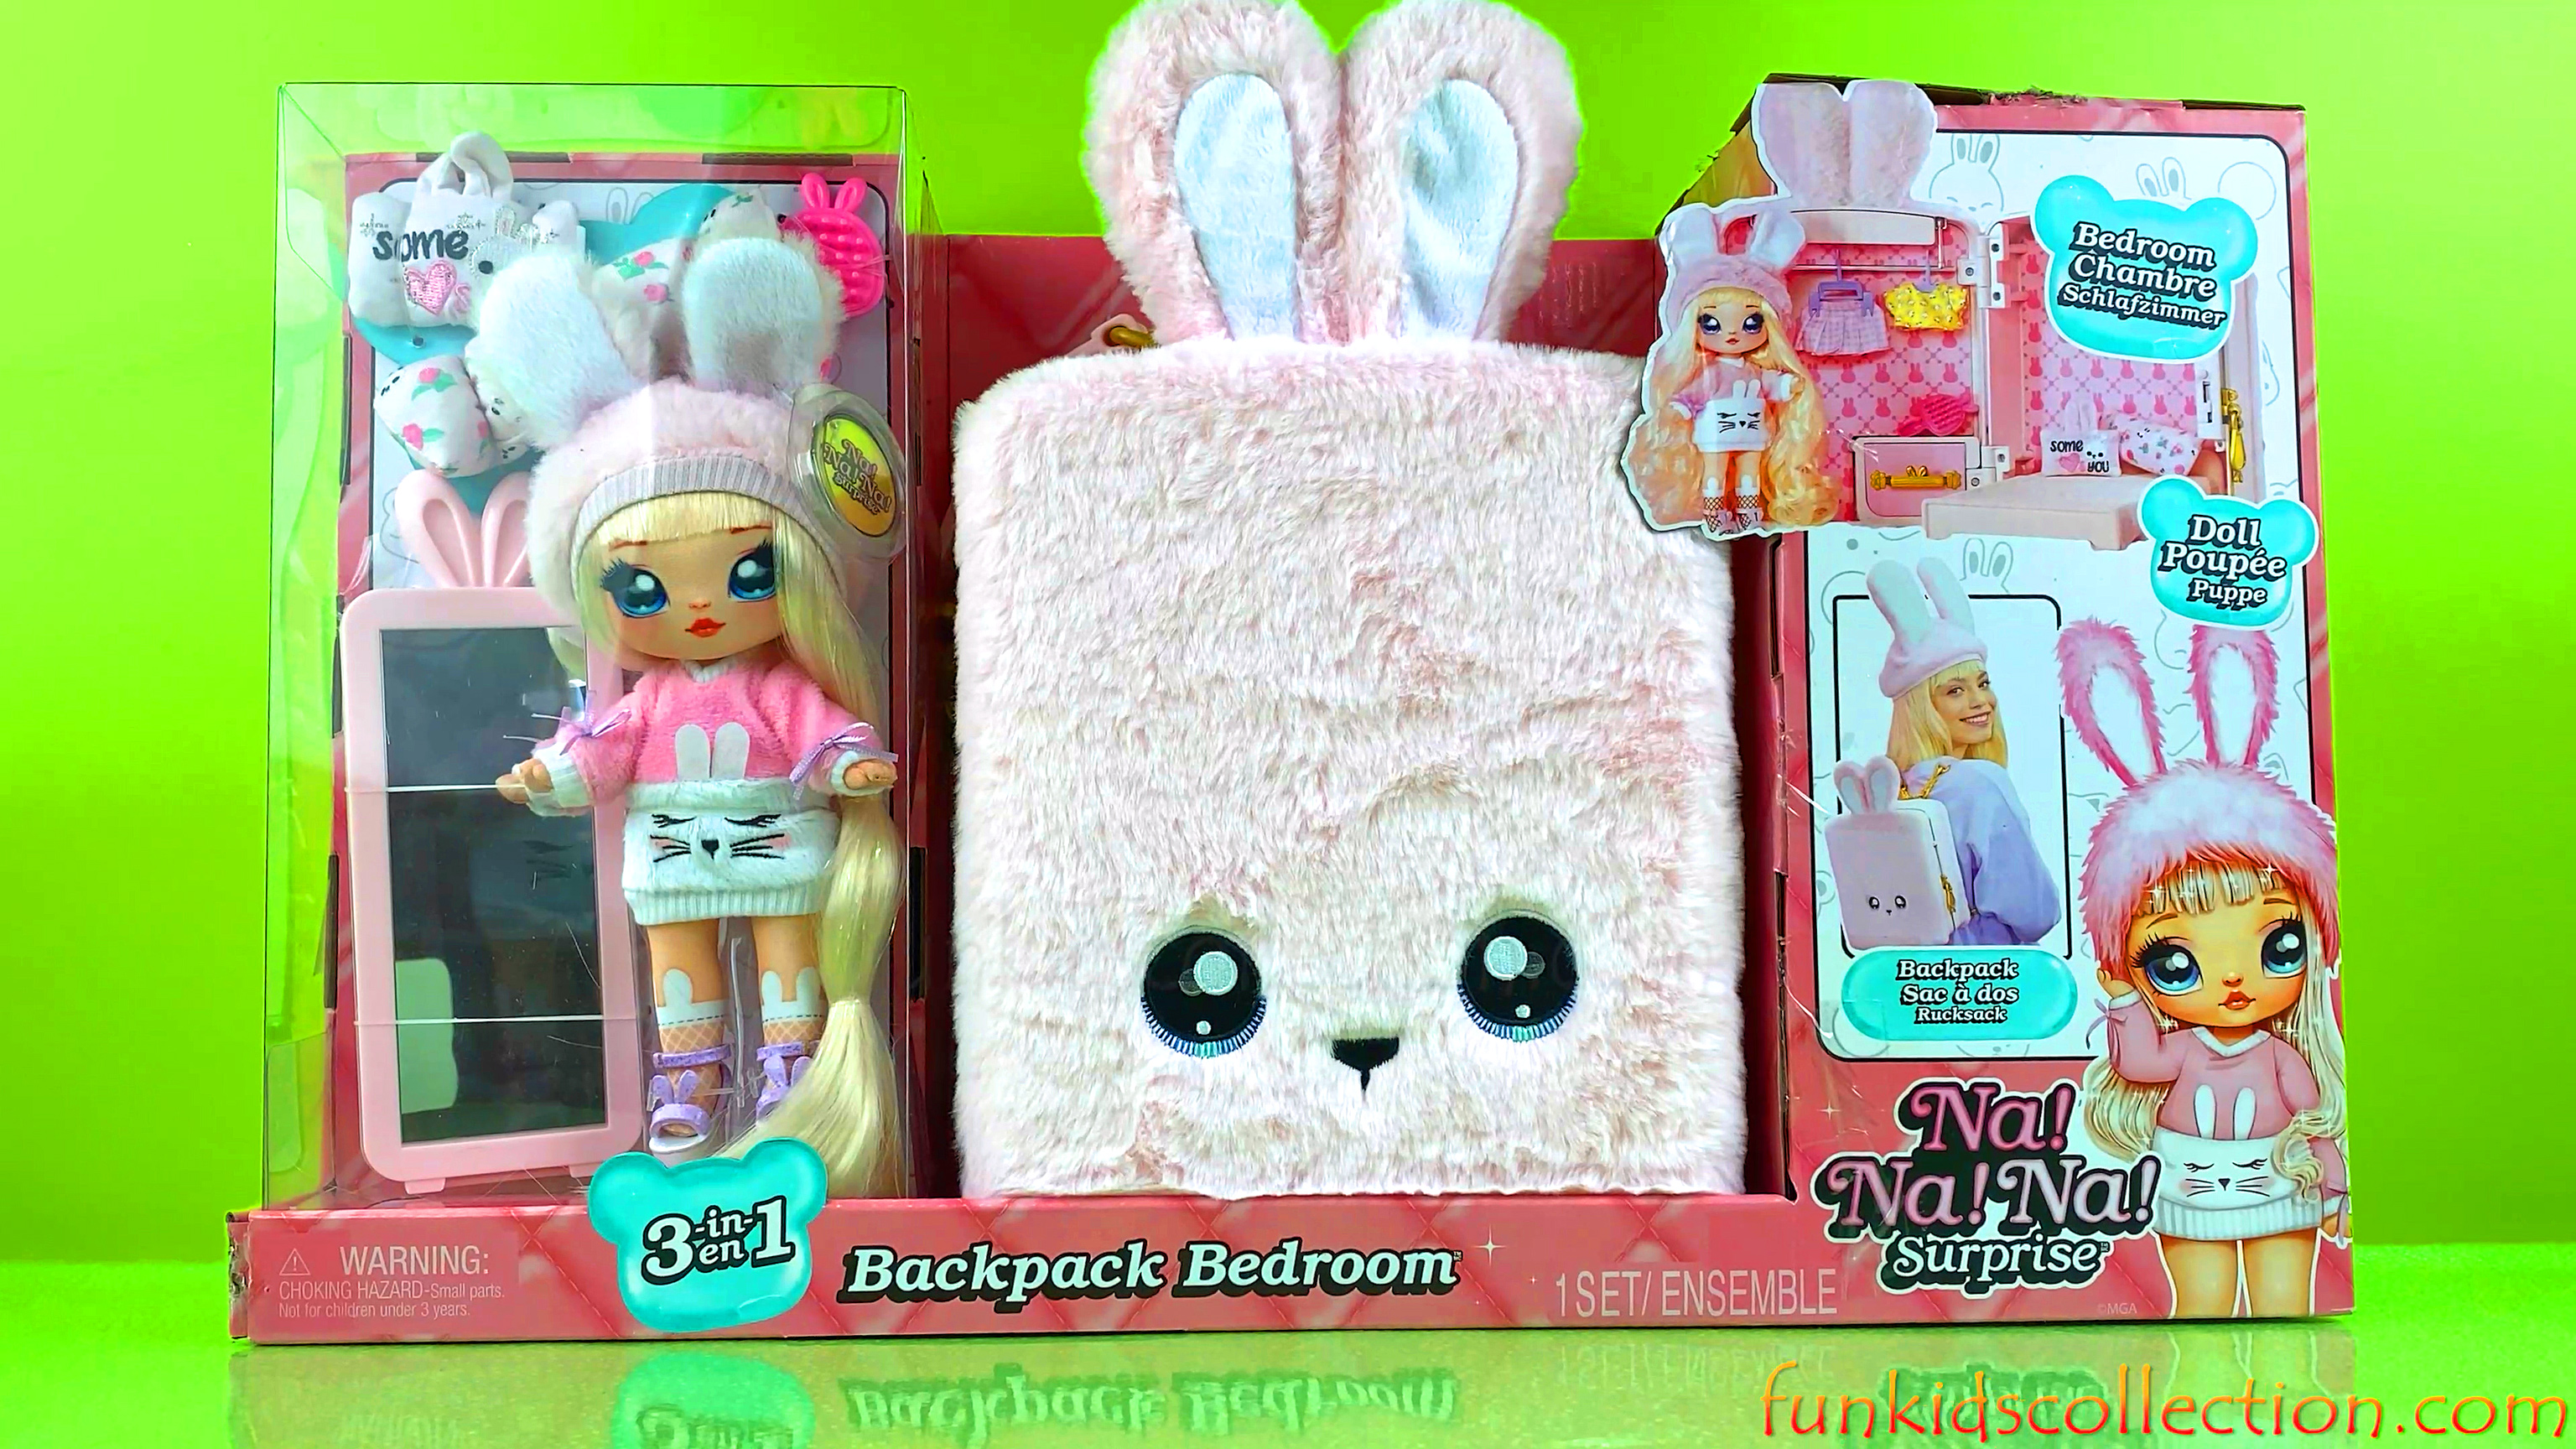 Na Na Na Surprise Doll Pink | Na Na Na Surprise Doll Backpack Bedroom Pink | EBD Toys